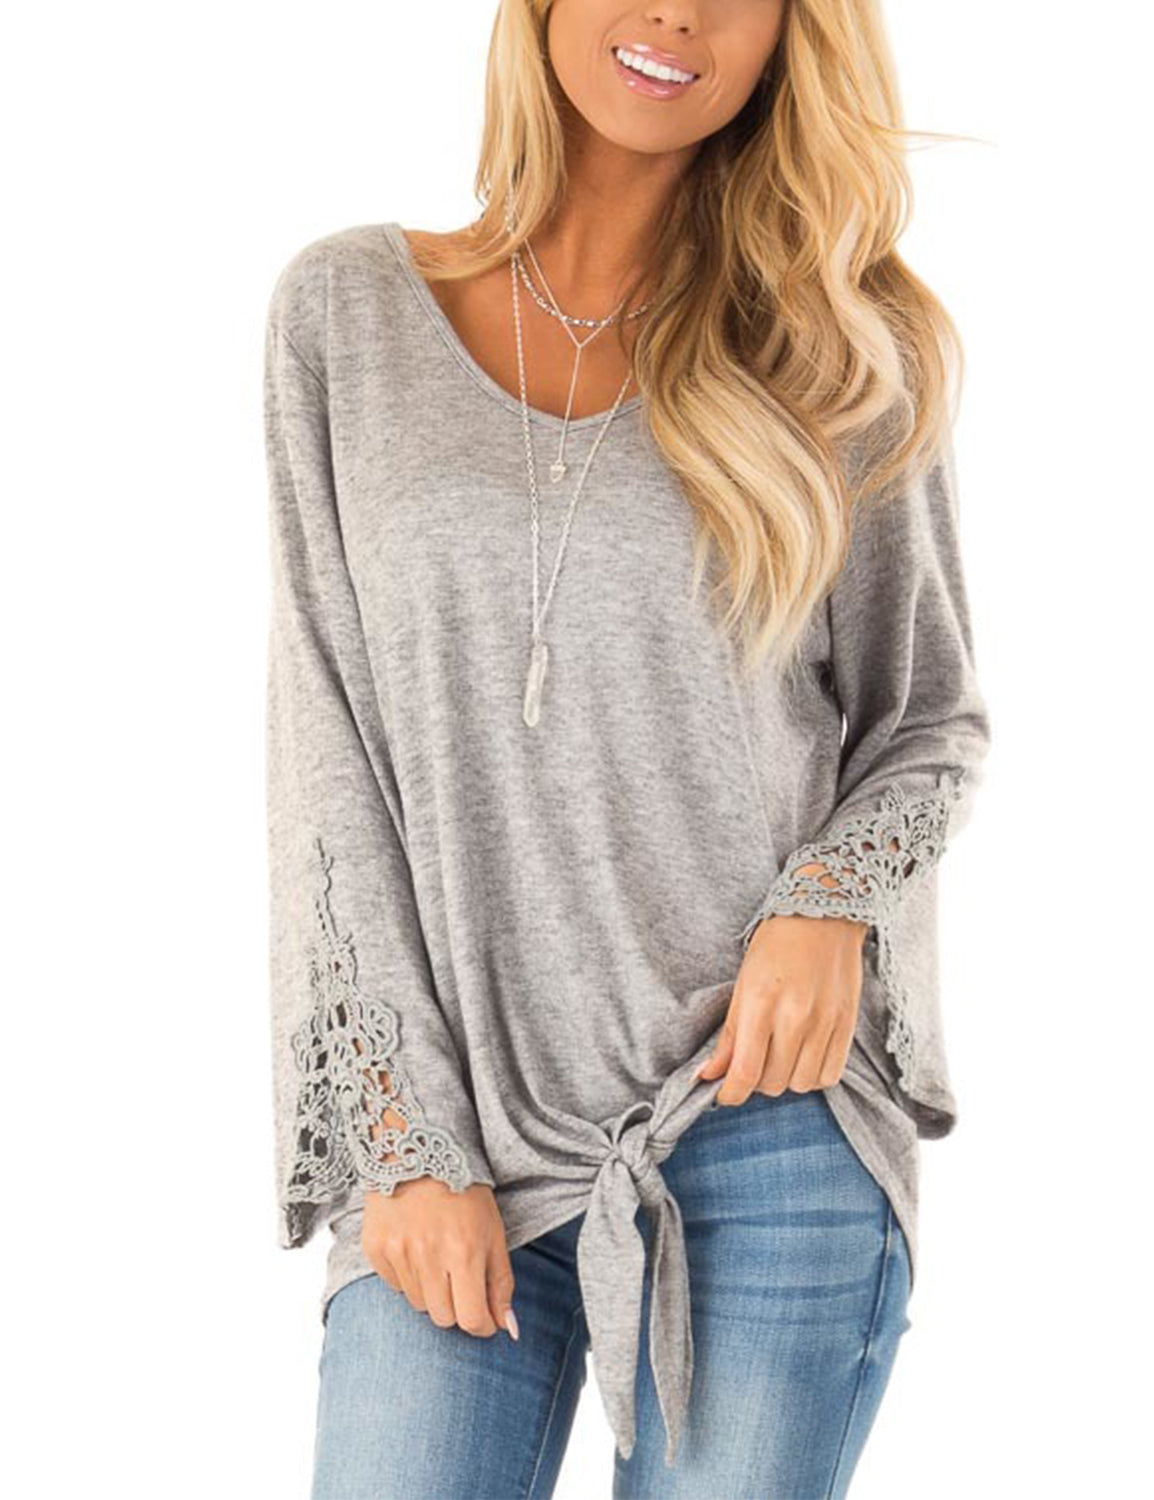 Blooming Jelly_Lovely Lace Flare Sleeves Tie Waist Blouse_Gray_152564_07_Cute Women Long Sleeves_Tops_Blouse